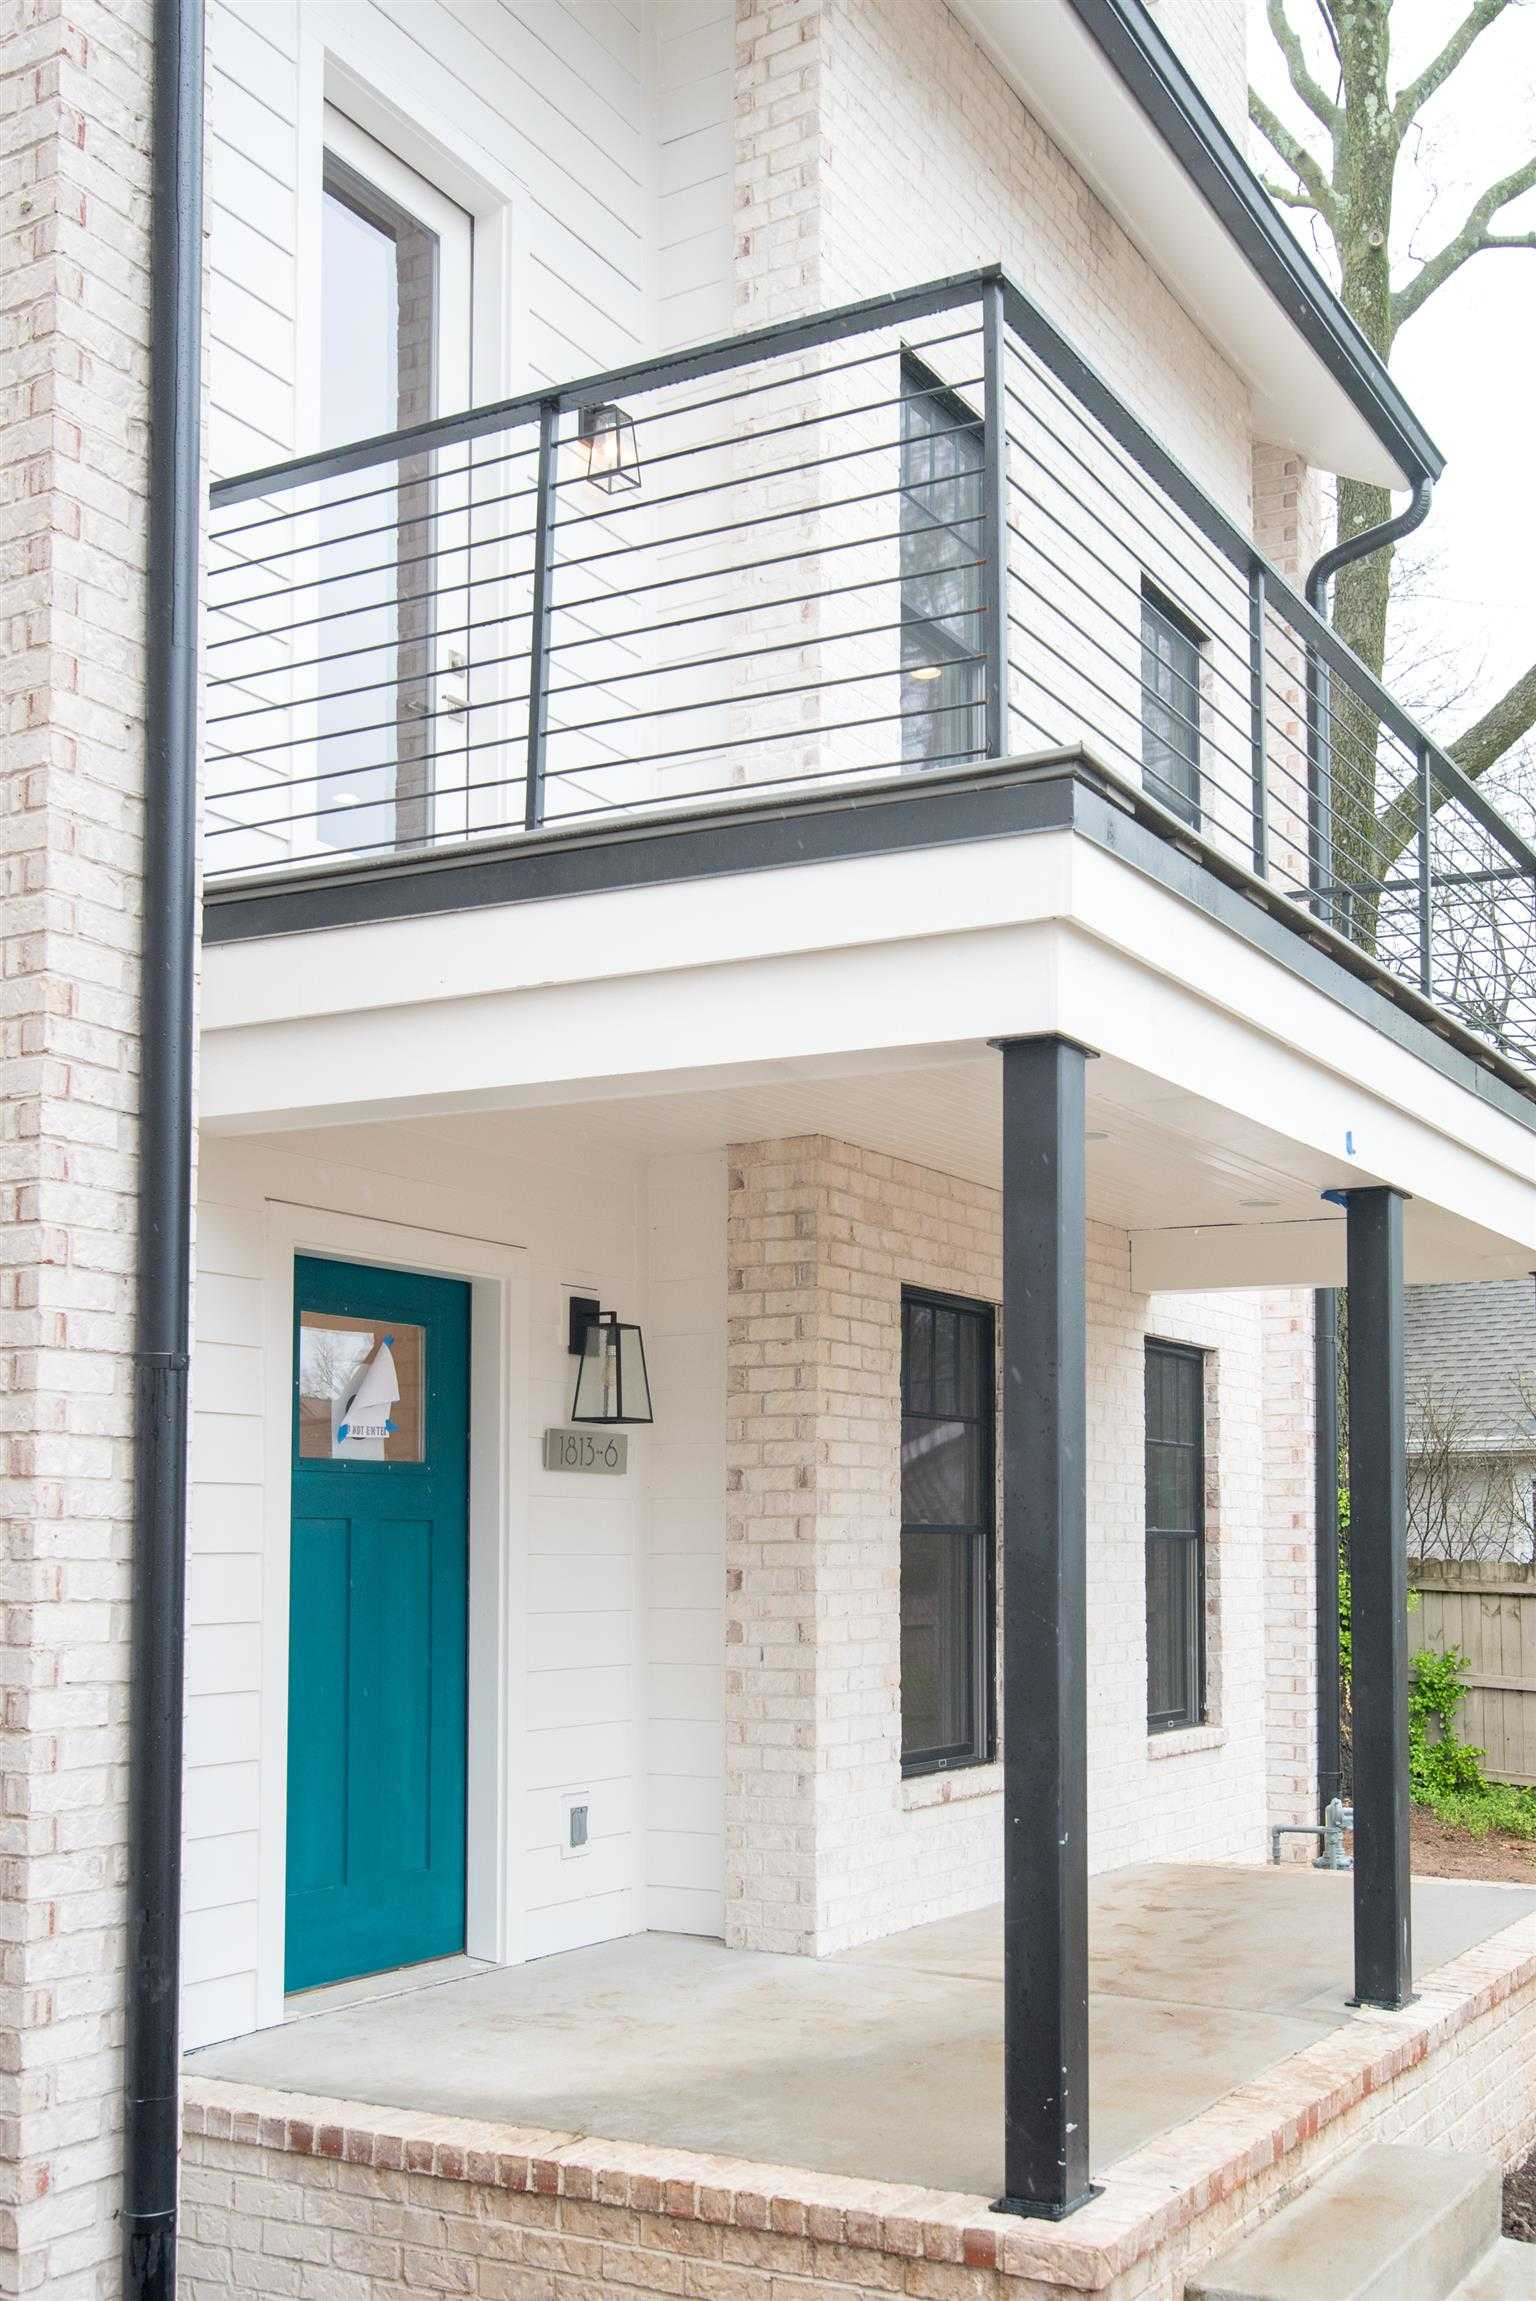 $644,900 - 4Br/4Ba -  for Sale in 12th South / Wedgewood, Nashville